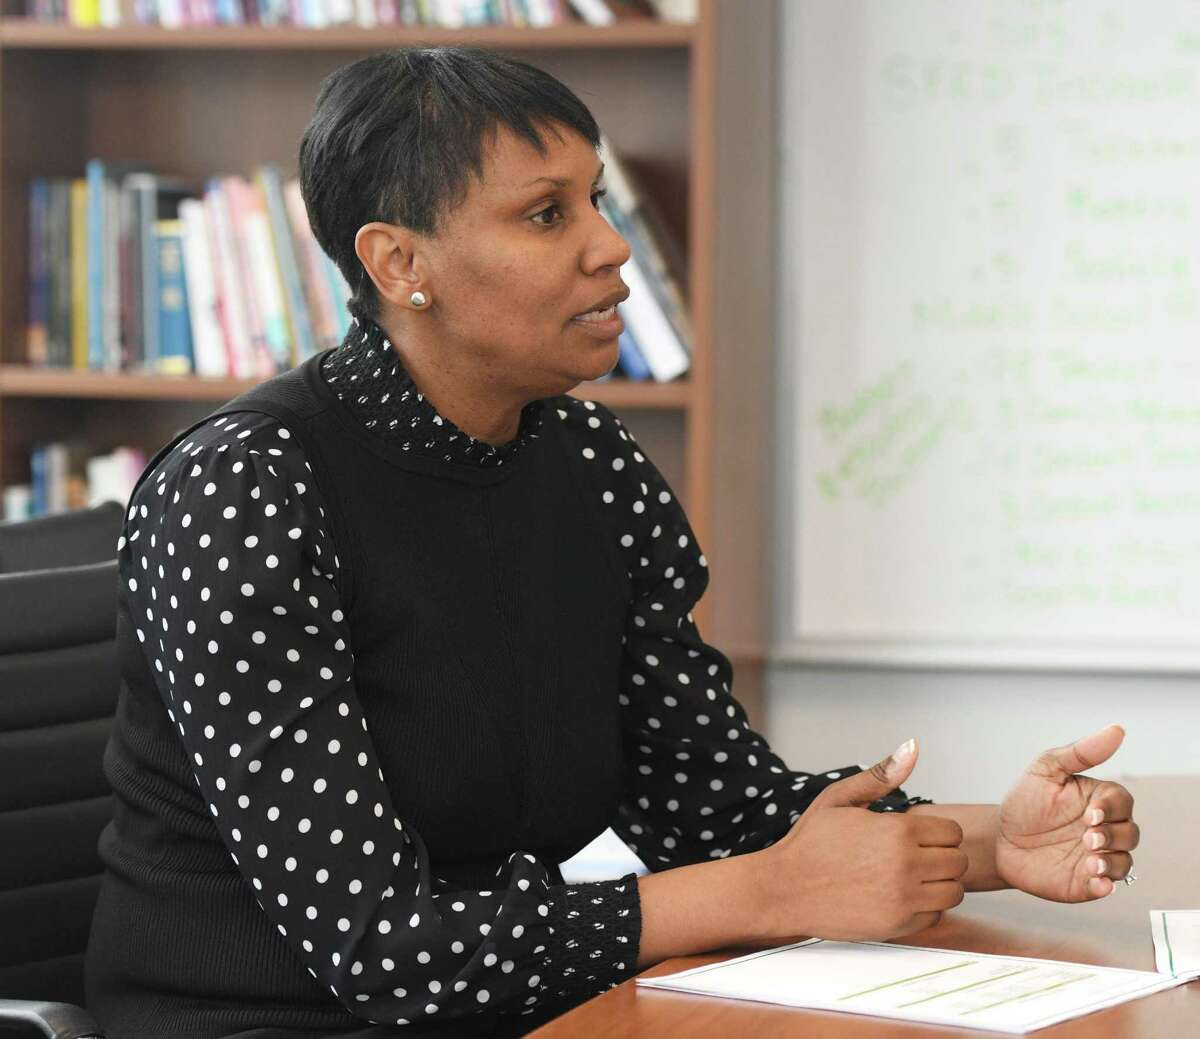 Superintendent of Stamford Public Schools Dr. Tamu Lucero discusses the 2020-2021 budget proposal in her office at the Government Center in Stamford, Conn. Tuesday, Jan. 14, 2020.